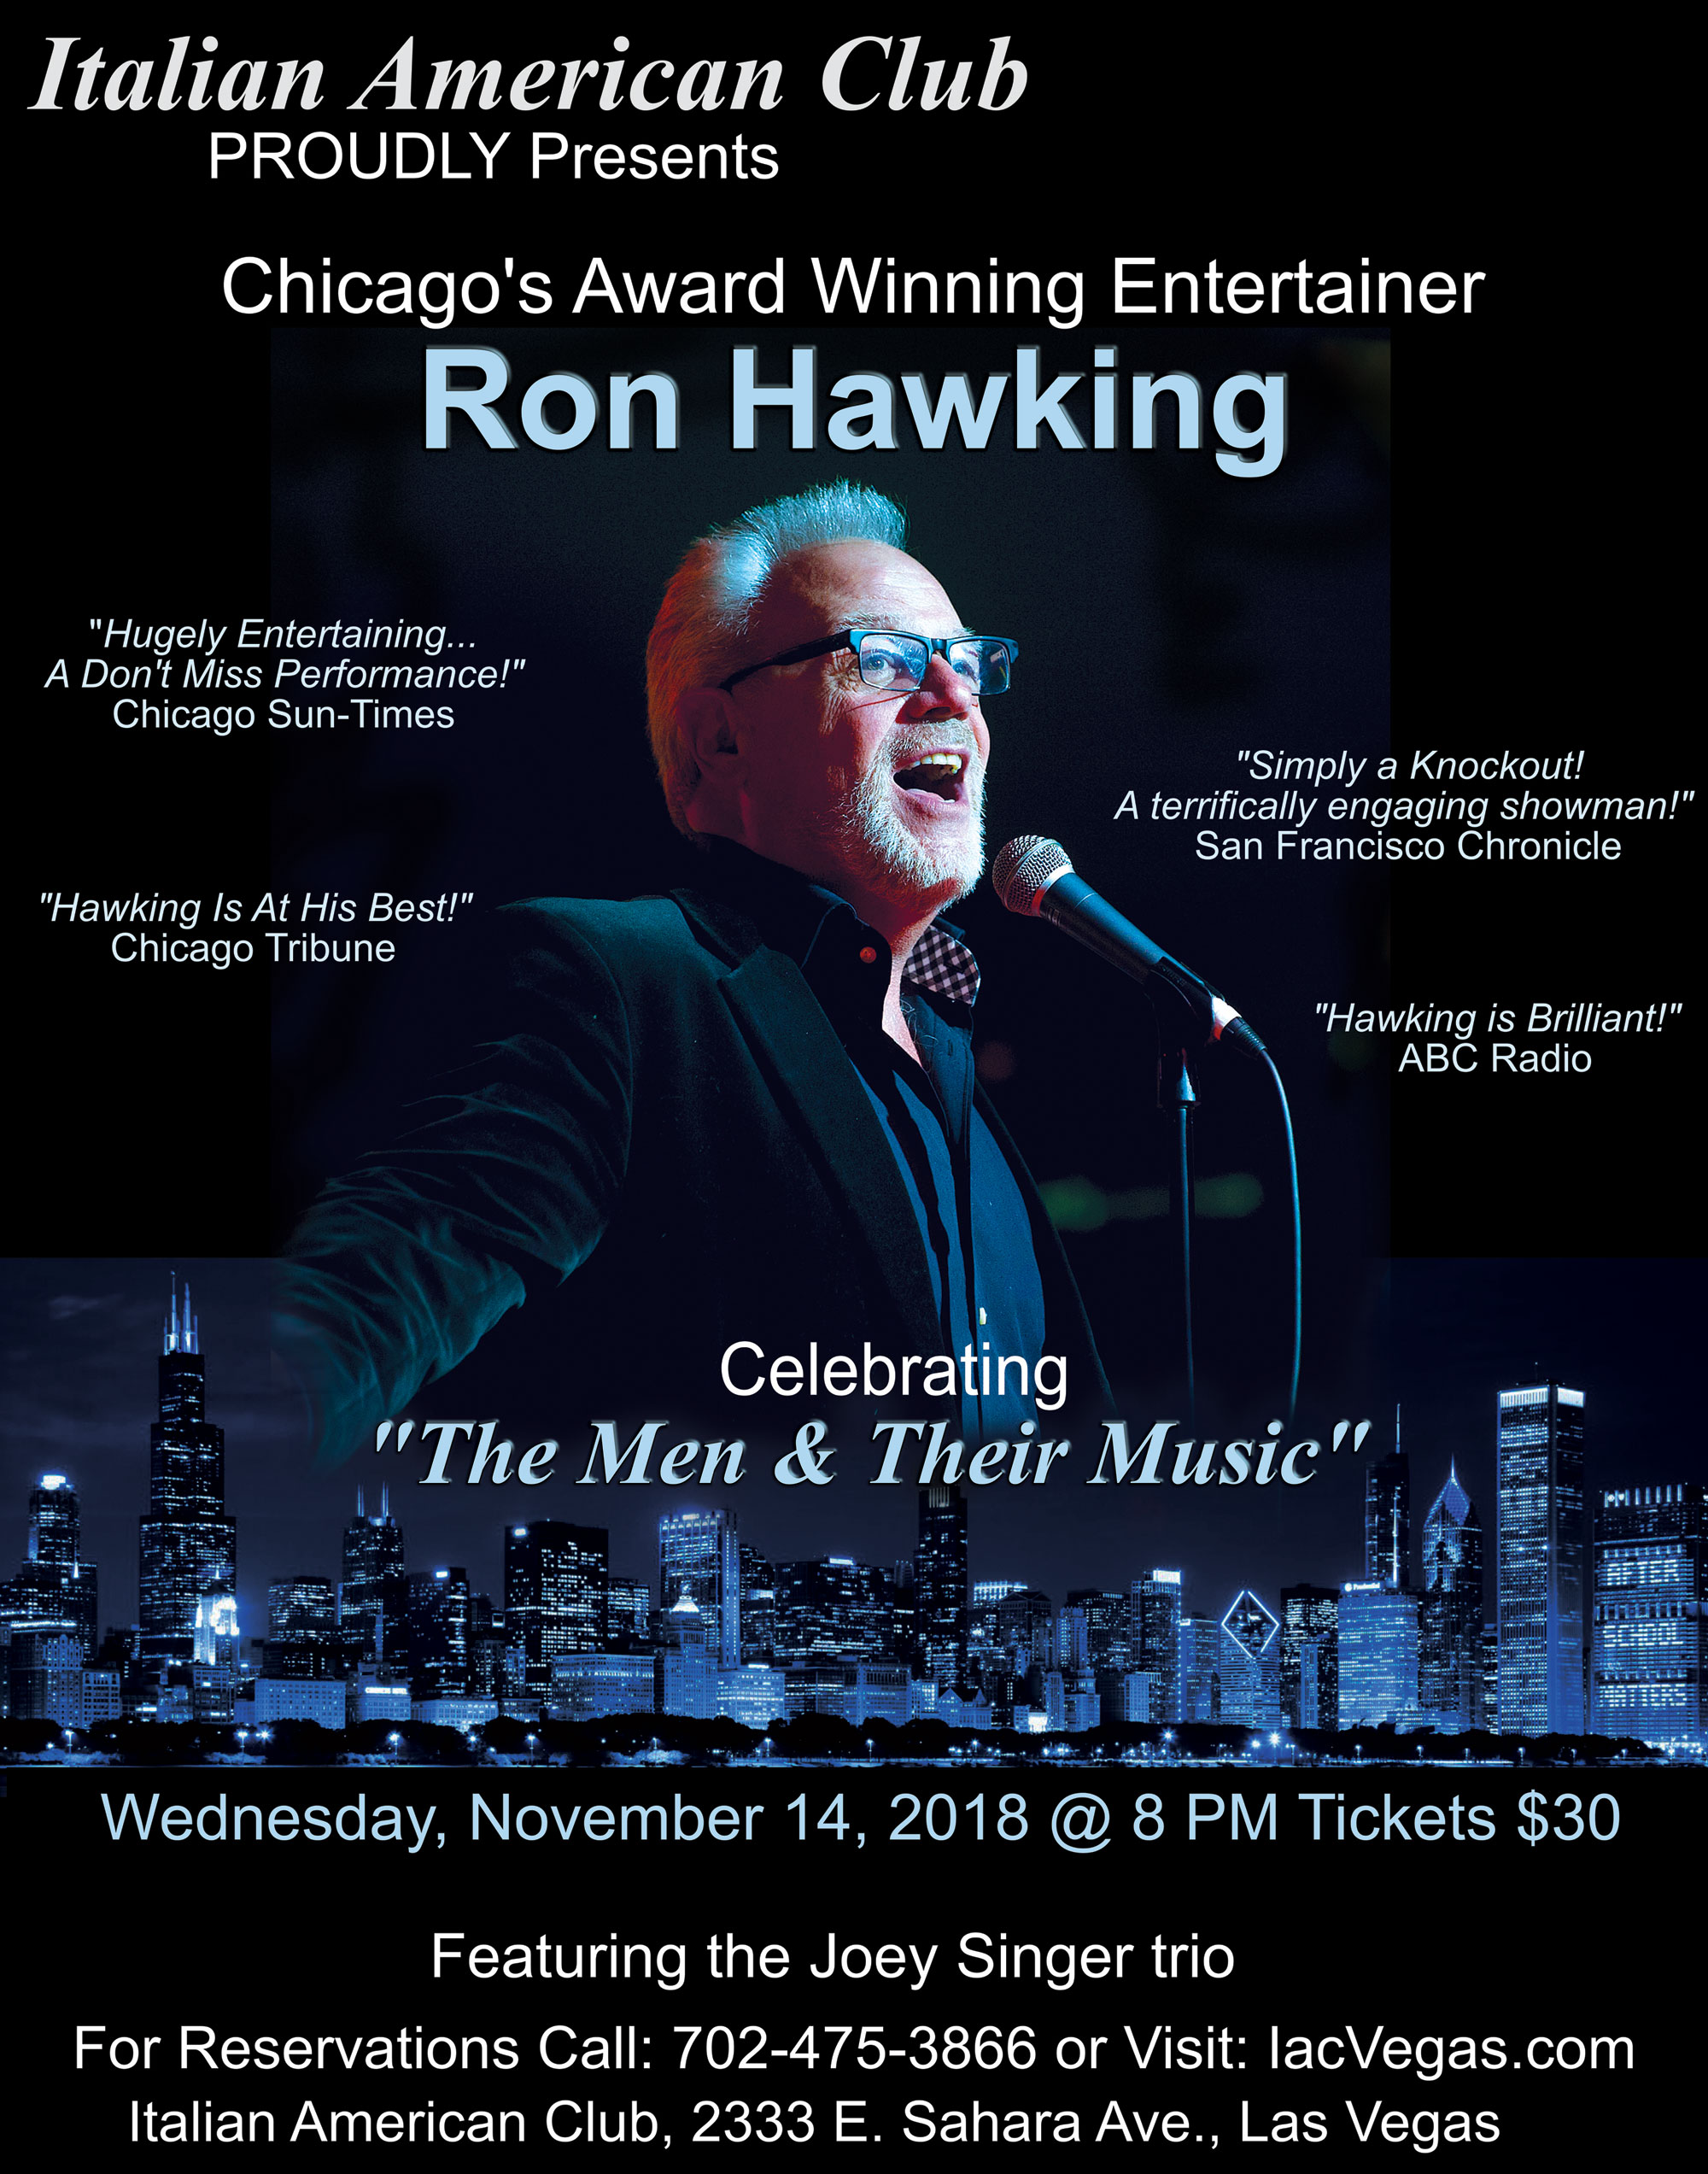 Ron Hawking - Chicago's Award Winning Entertainer